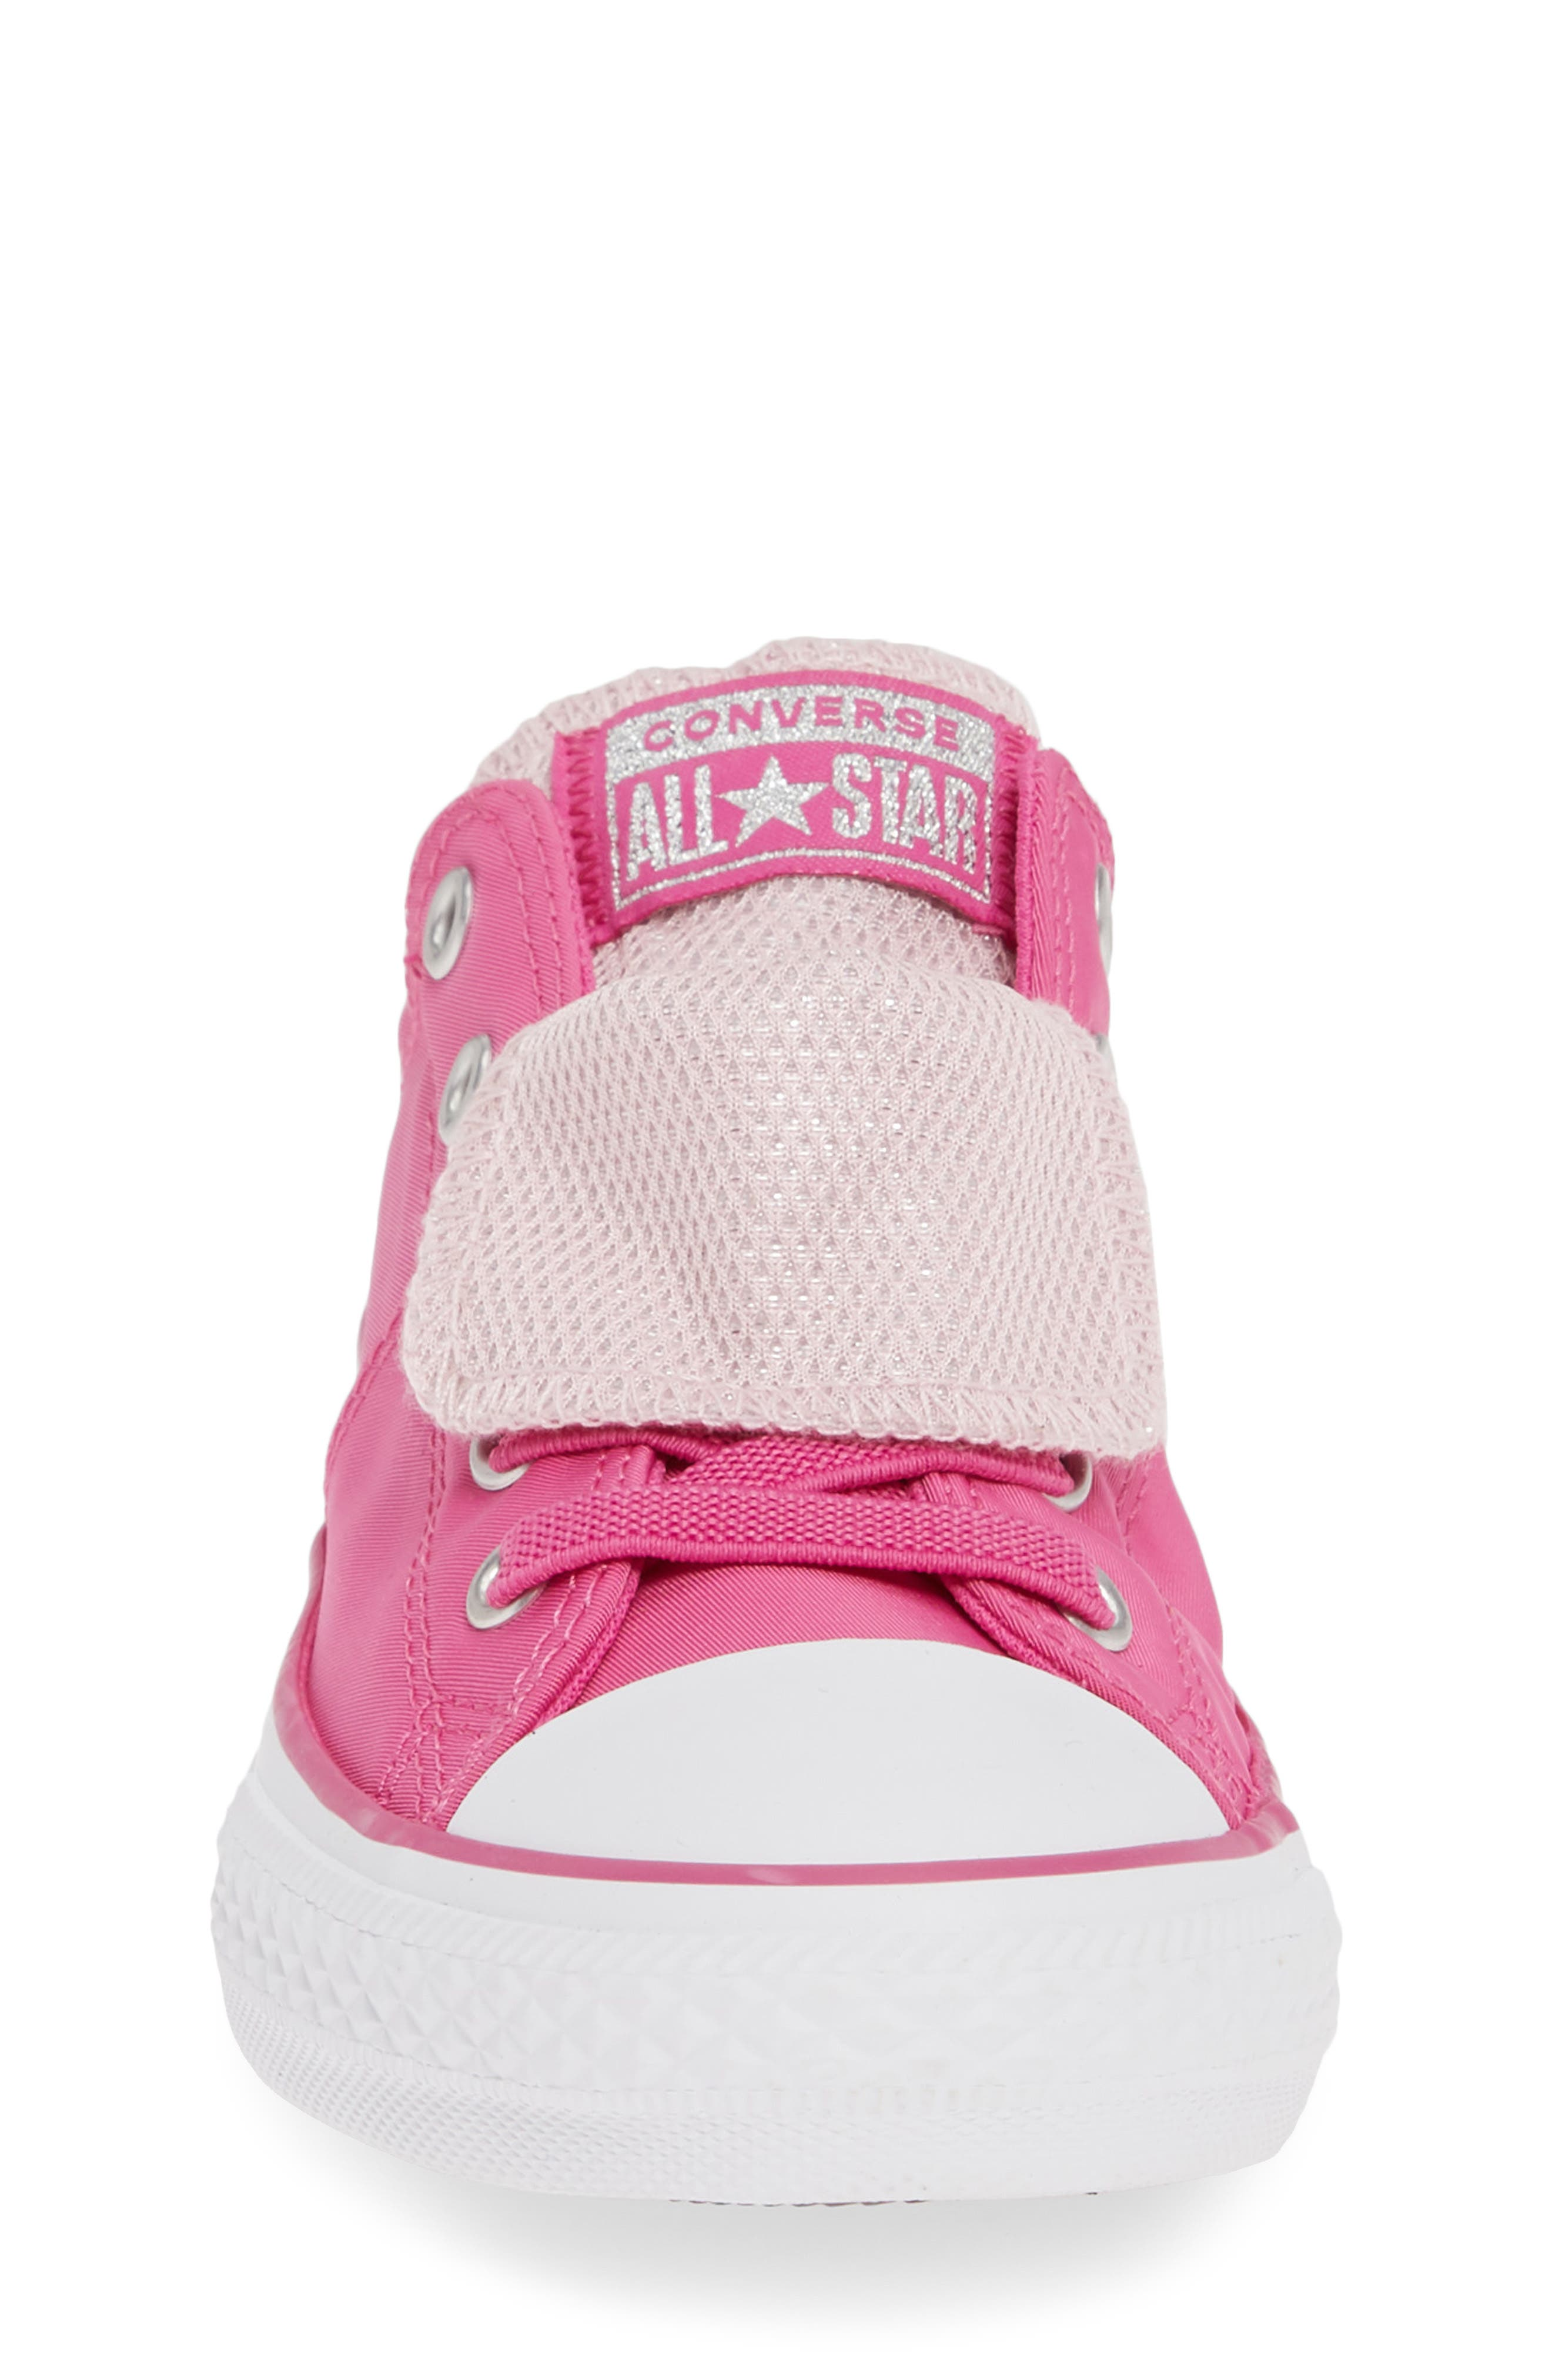 ,                             Chuck Taylor<sup>®</sup> All Star<sup>®</sup> Maddie Double Tongue Sneaker,                             Alternate thumbnail 34, color,                             650